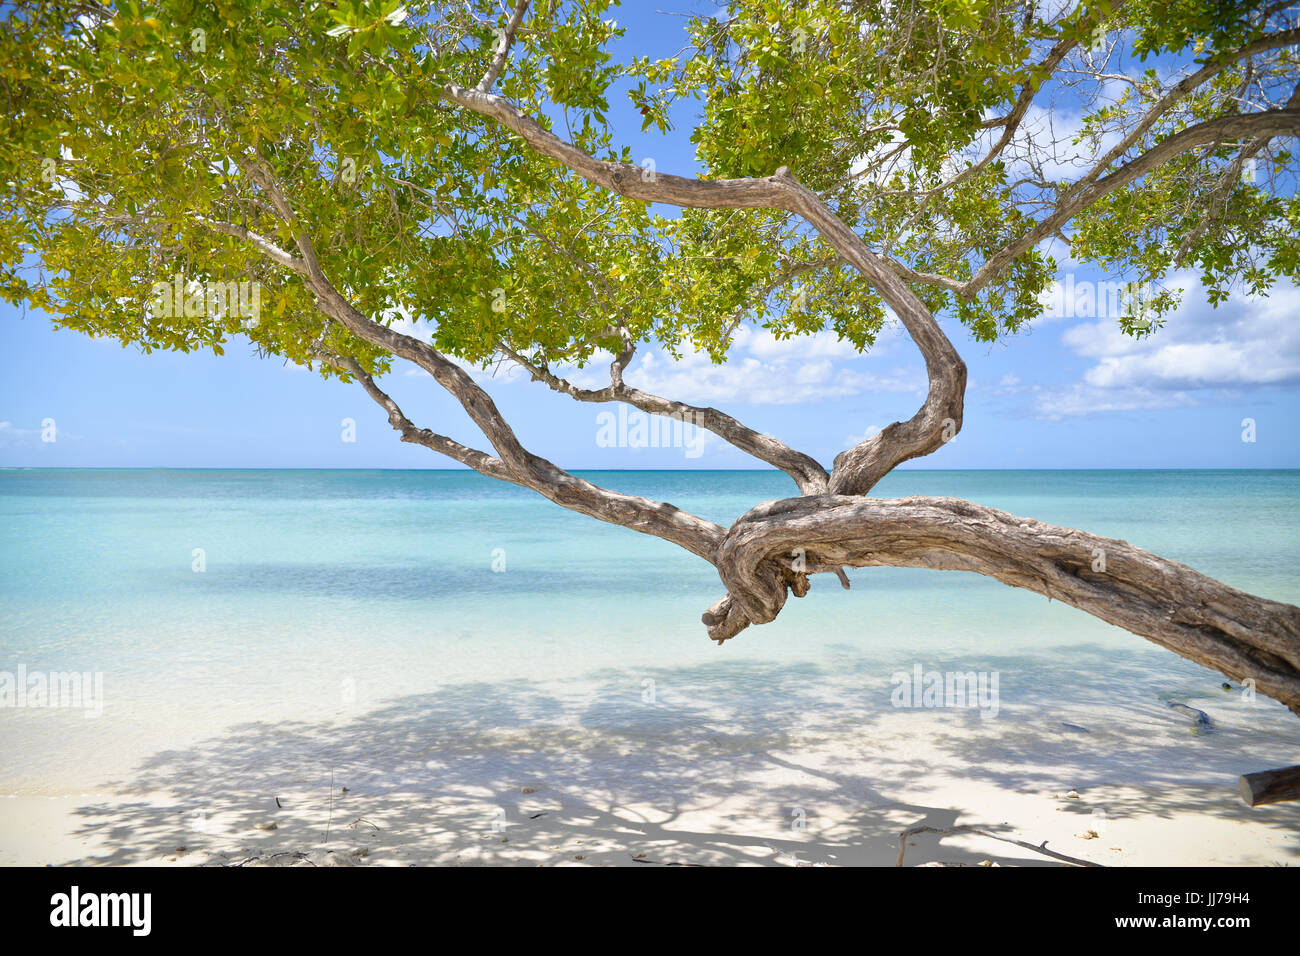 stunning ocean view with tree on beach in aruba, caribbean Stock Photo